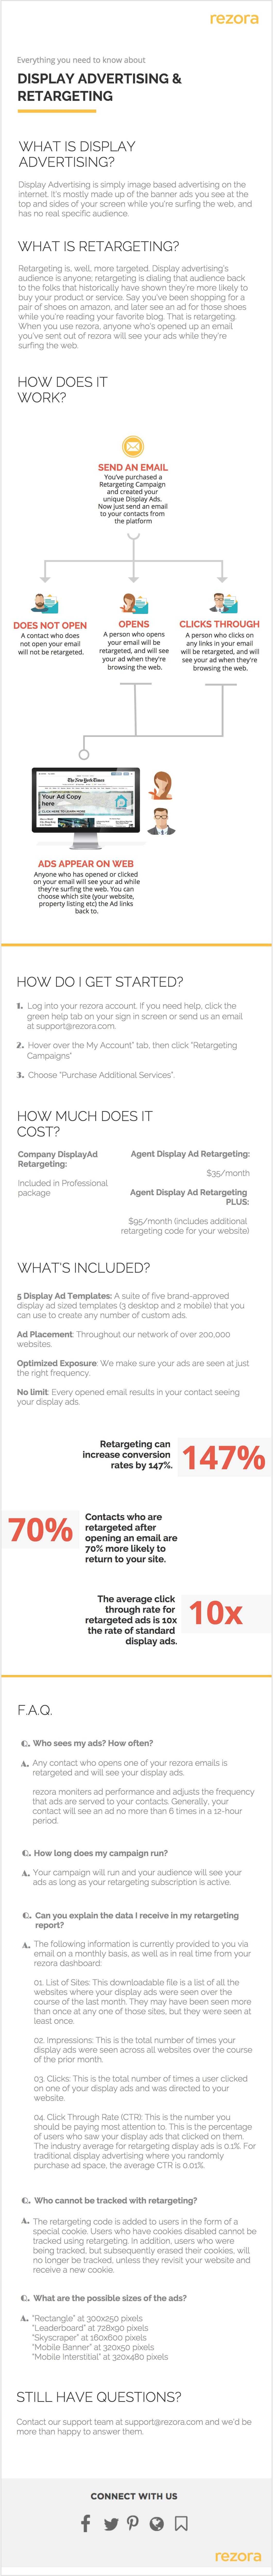 All about Display Ads